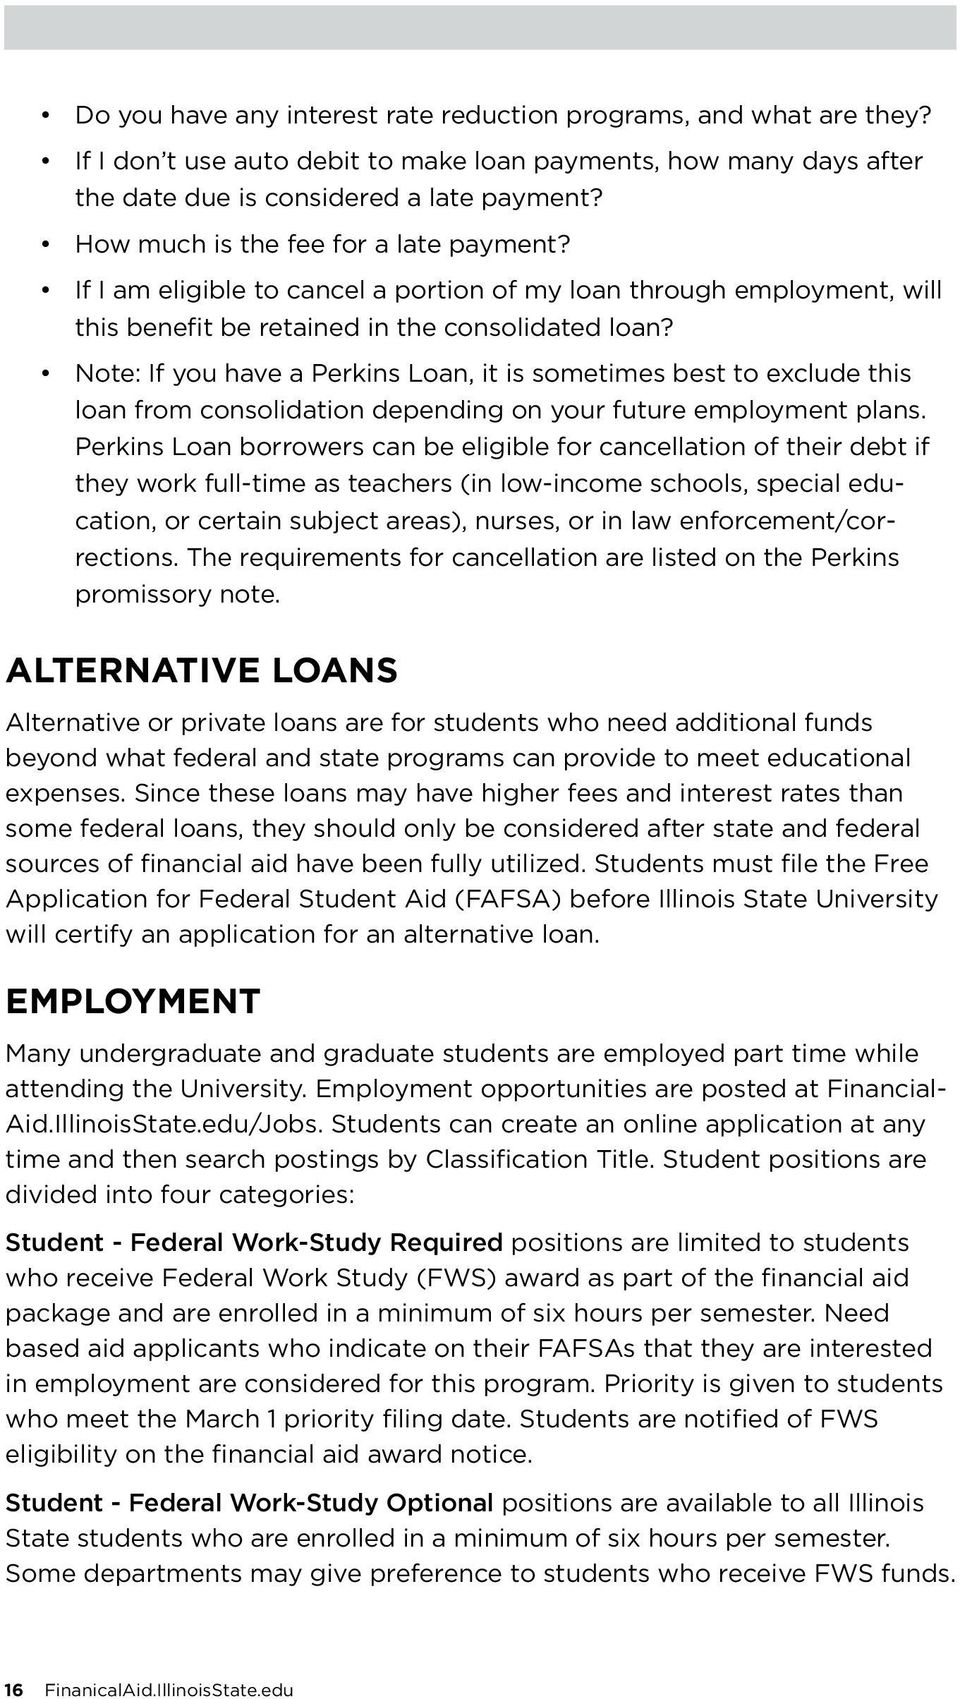 Note: If you have a Perkins Loan, it is sometimes best to exclude this loan from consolidation depending on your future employment plans.